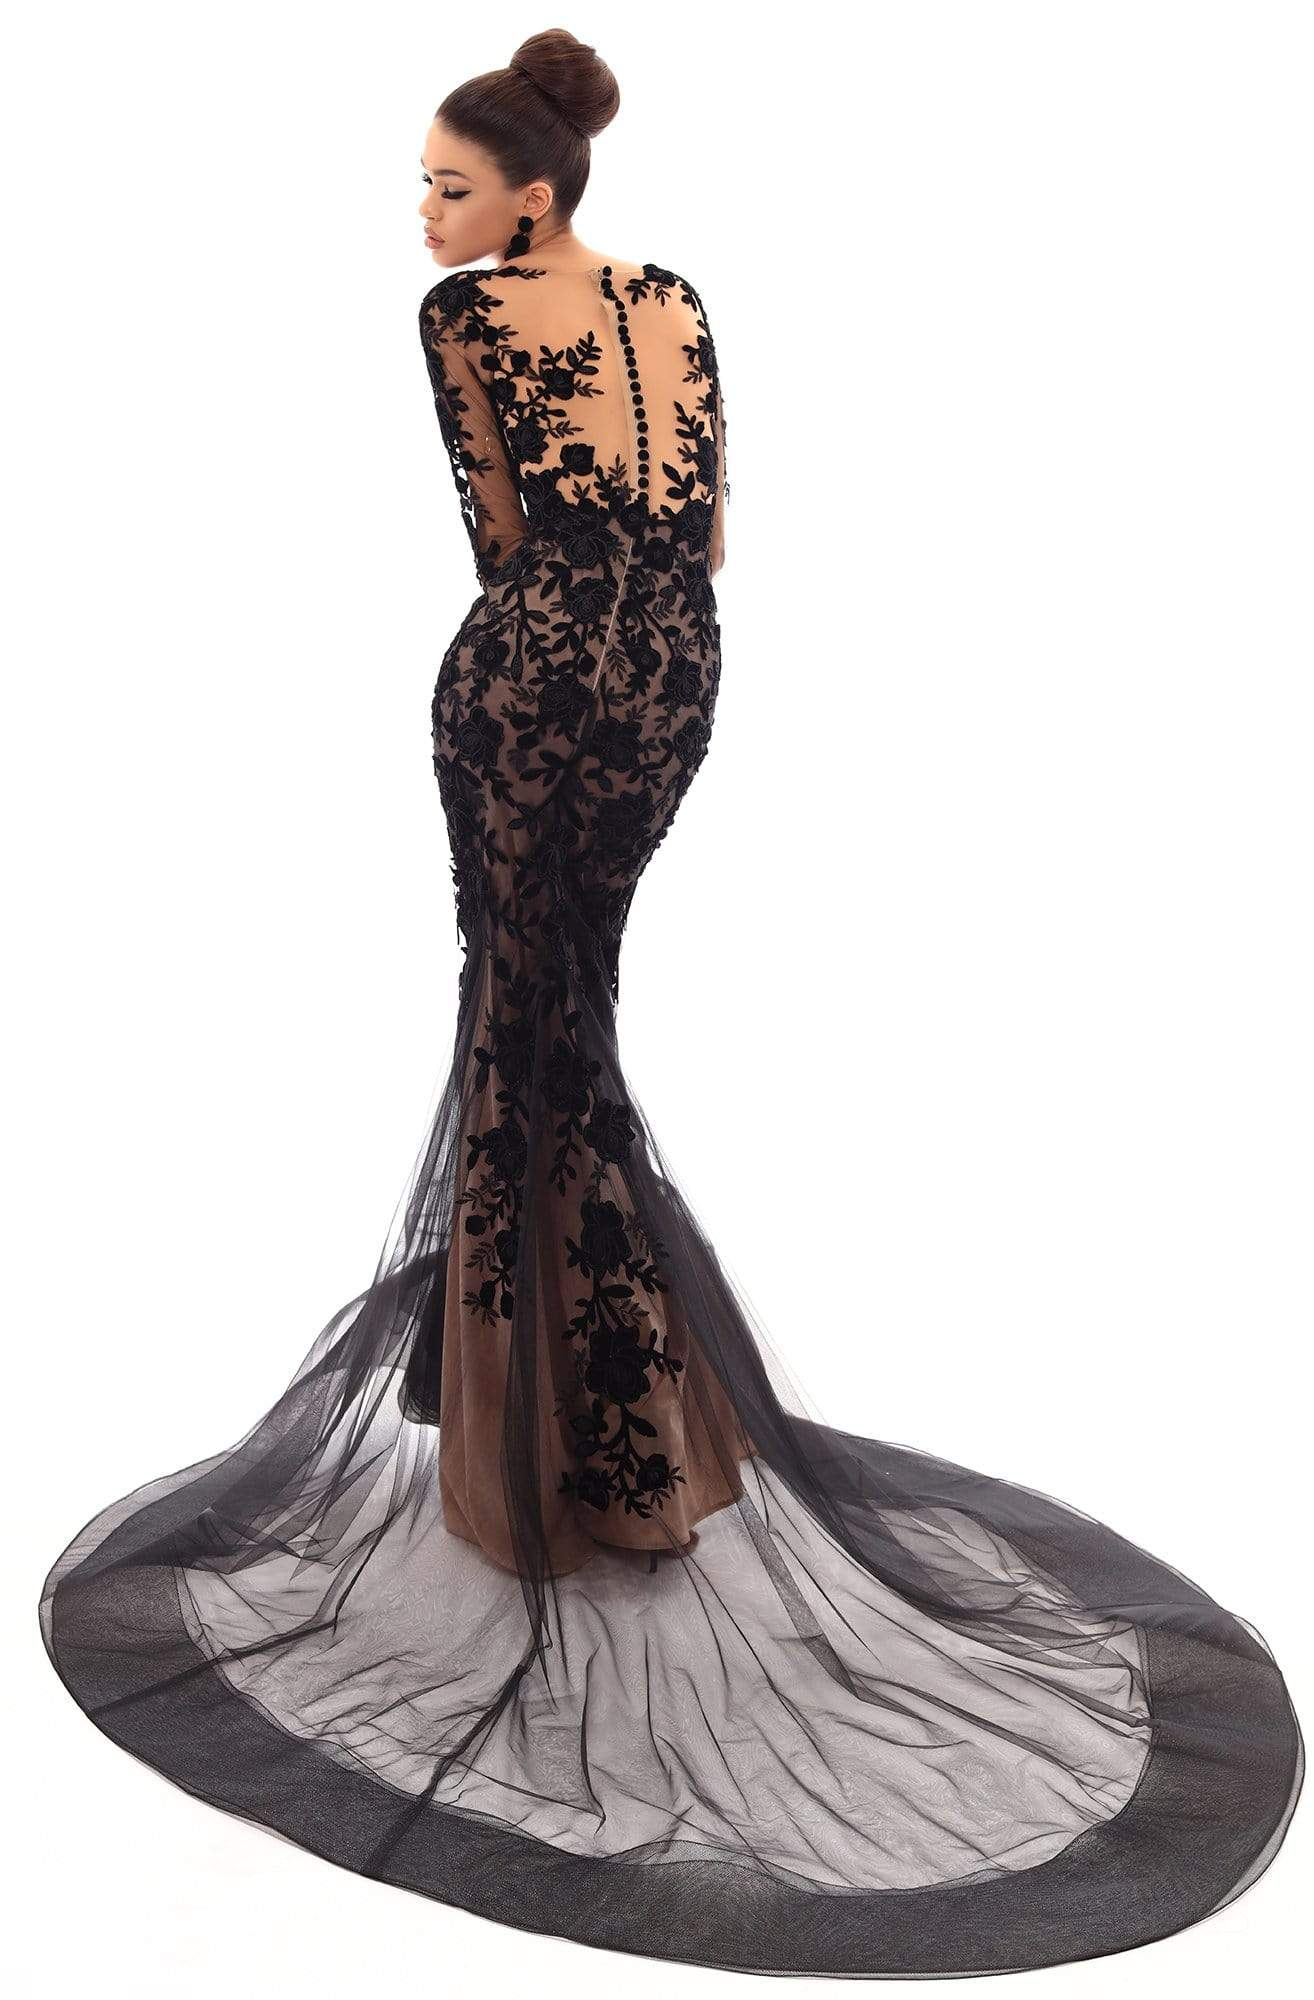 Tarik Ediz - 93656 Floral Applique Illusion Bateau Mermaid Dress Pageant Dresses